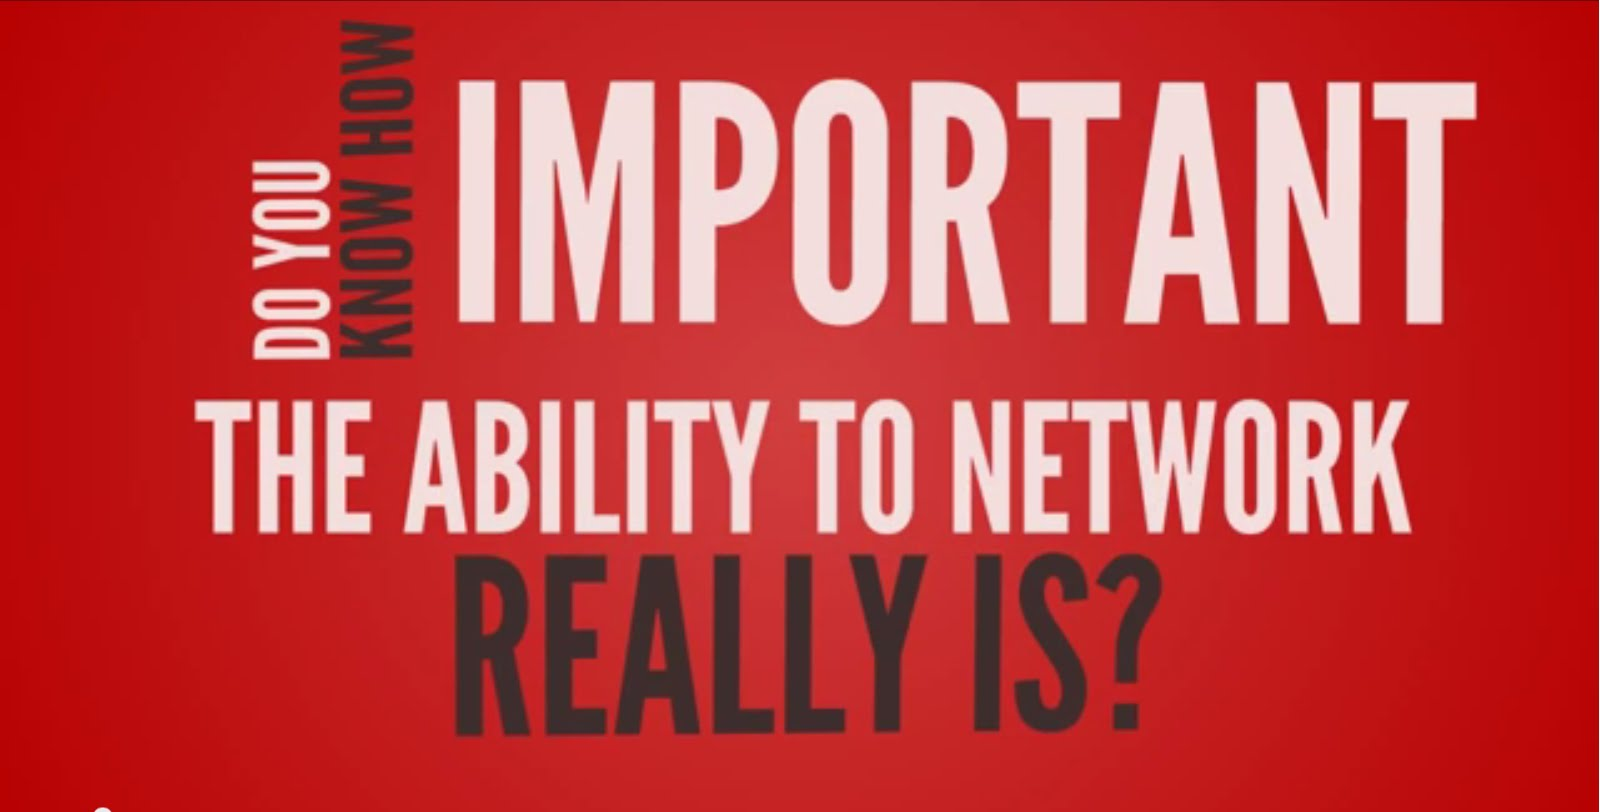 Quotes About Importance Of Networking 20 Quotes